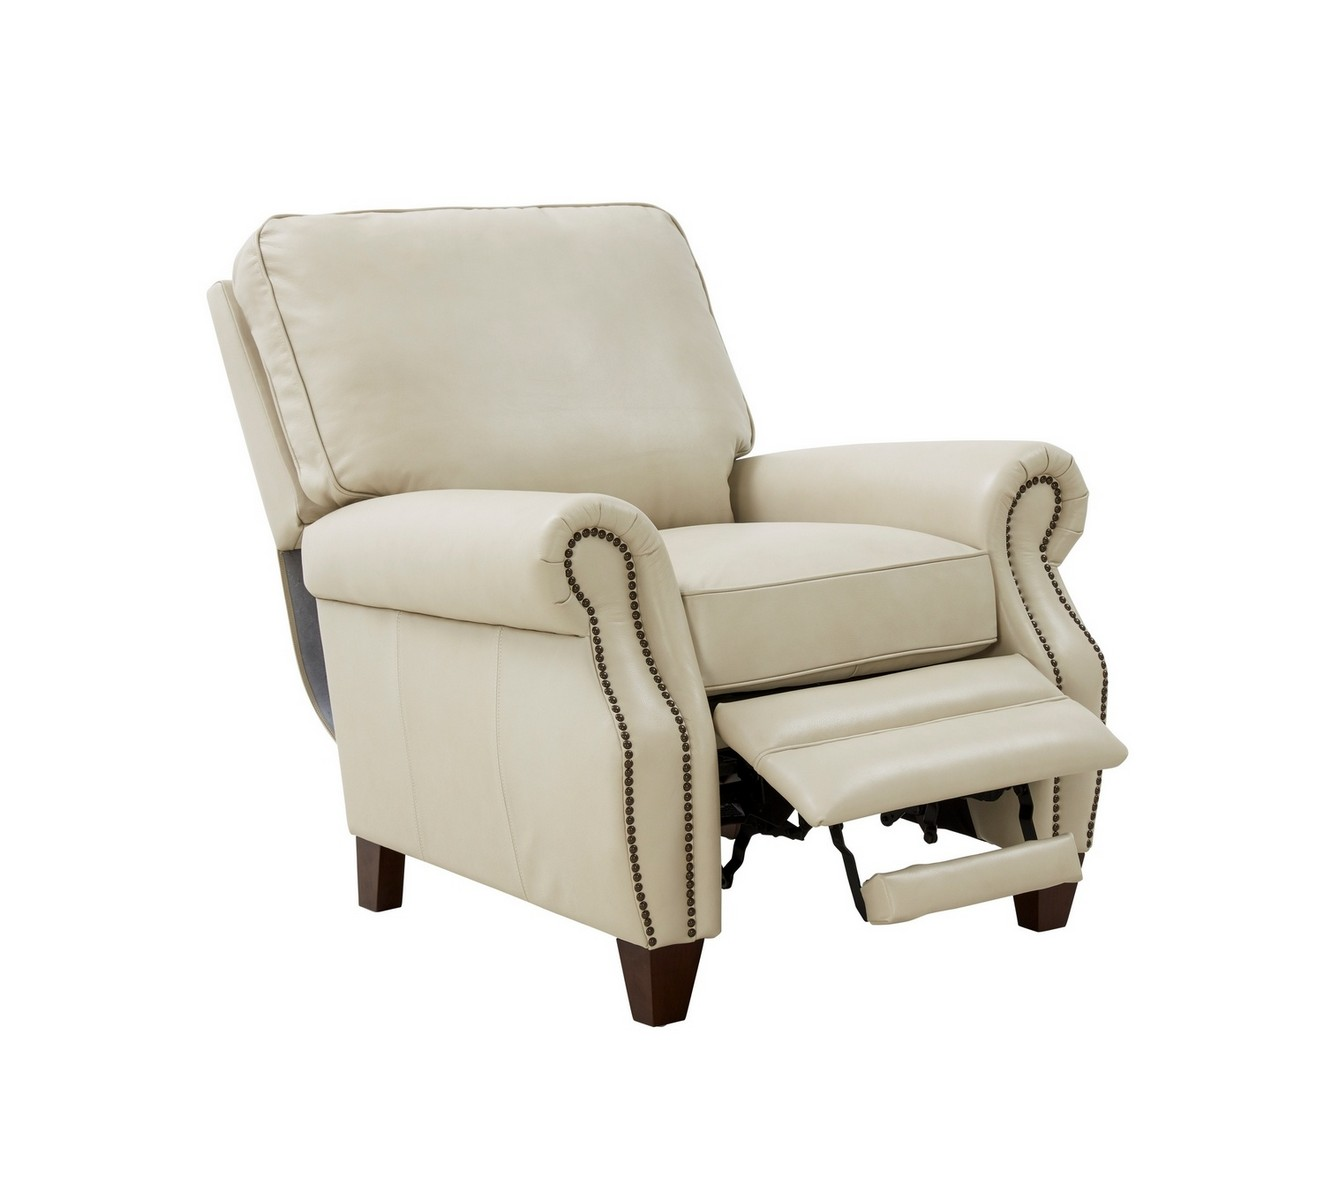 Barcalounger Briarwood Recliner Chair - Barone Parchment/All Leather